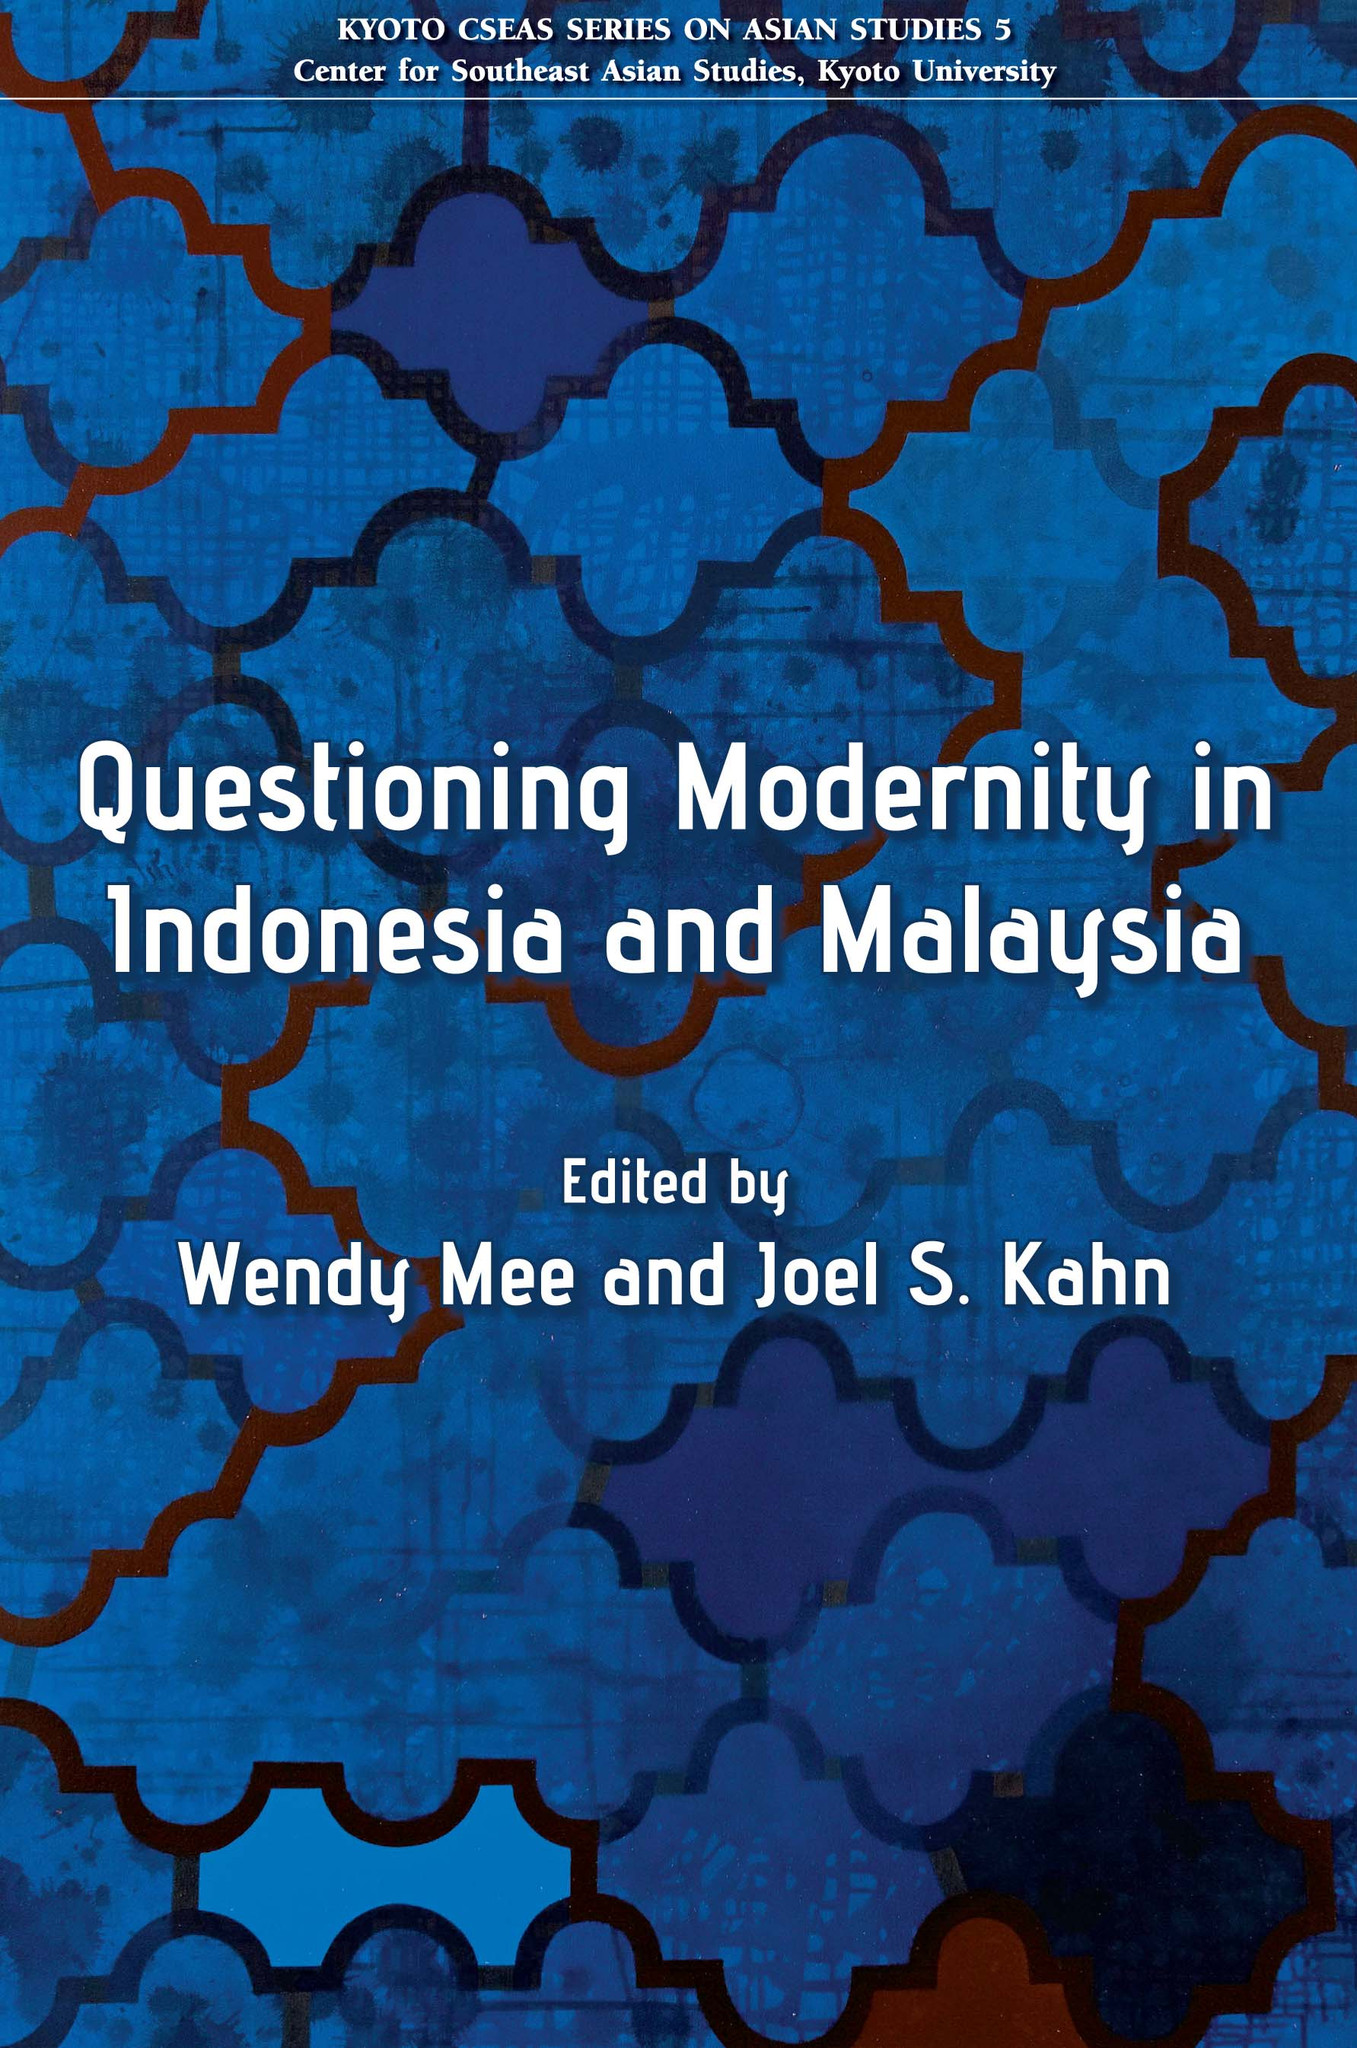 Questioning Modernity in Indonesia and Malaysia